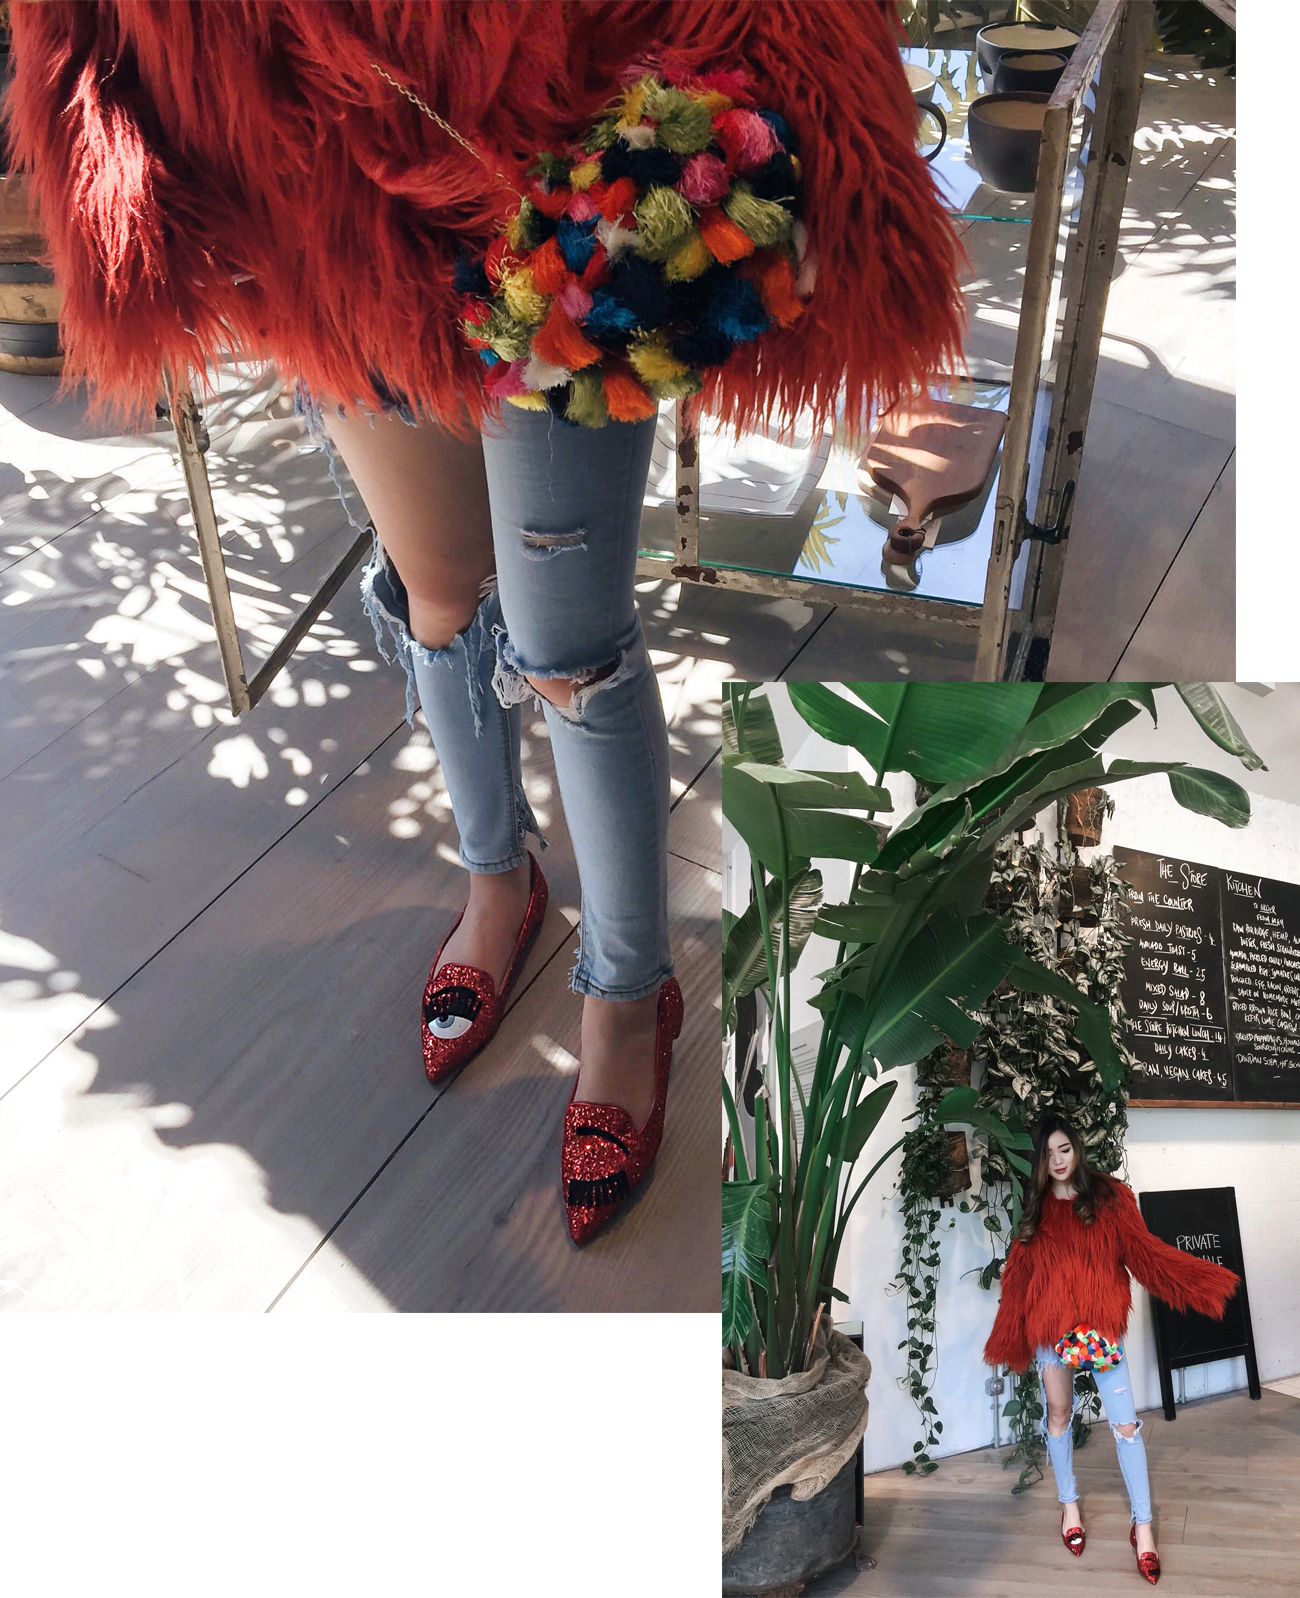 willabelle-ong-paledivision-street-style-fashion-travel-lifestyle-blog-singapore-australia-outfit-editorial-shopbop-berlin-germany-glitter-shoes